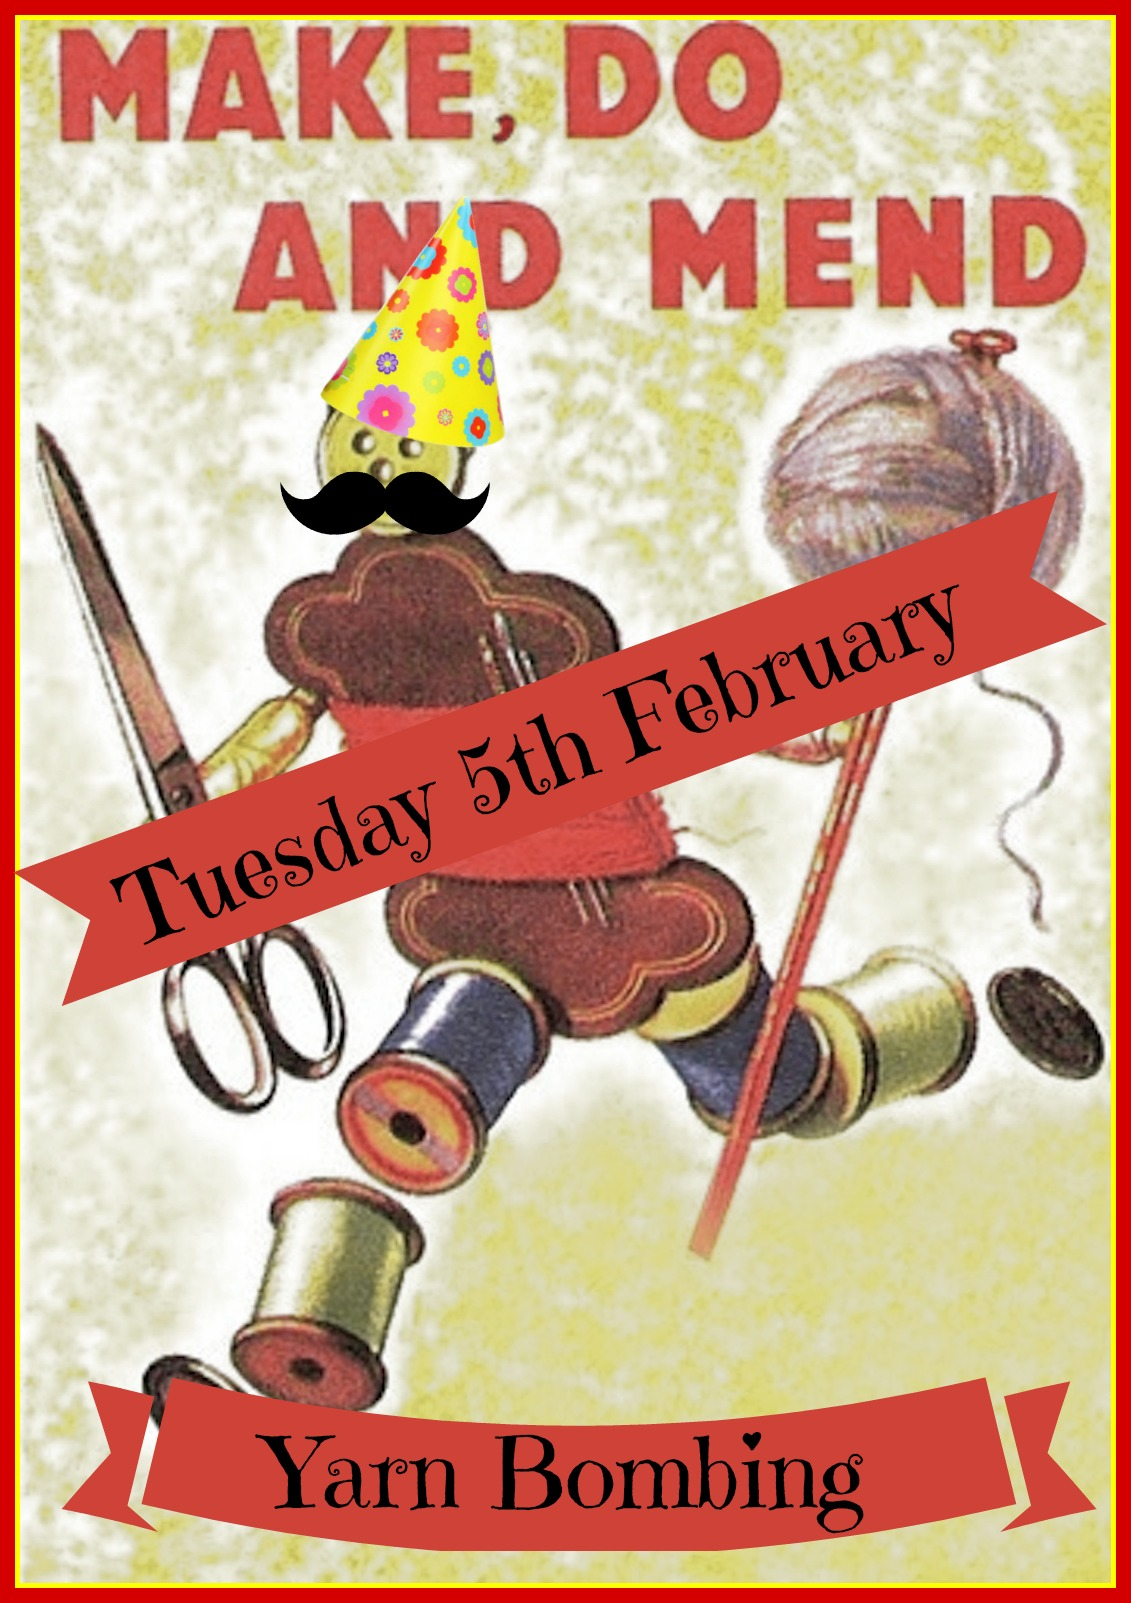 make, do & mend man- February 2013jpg